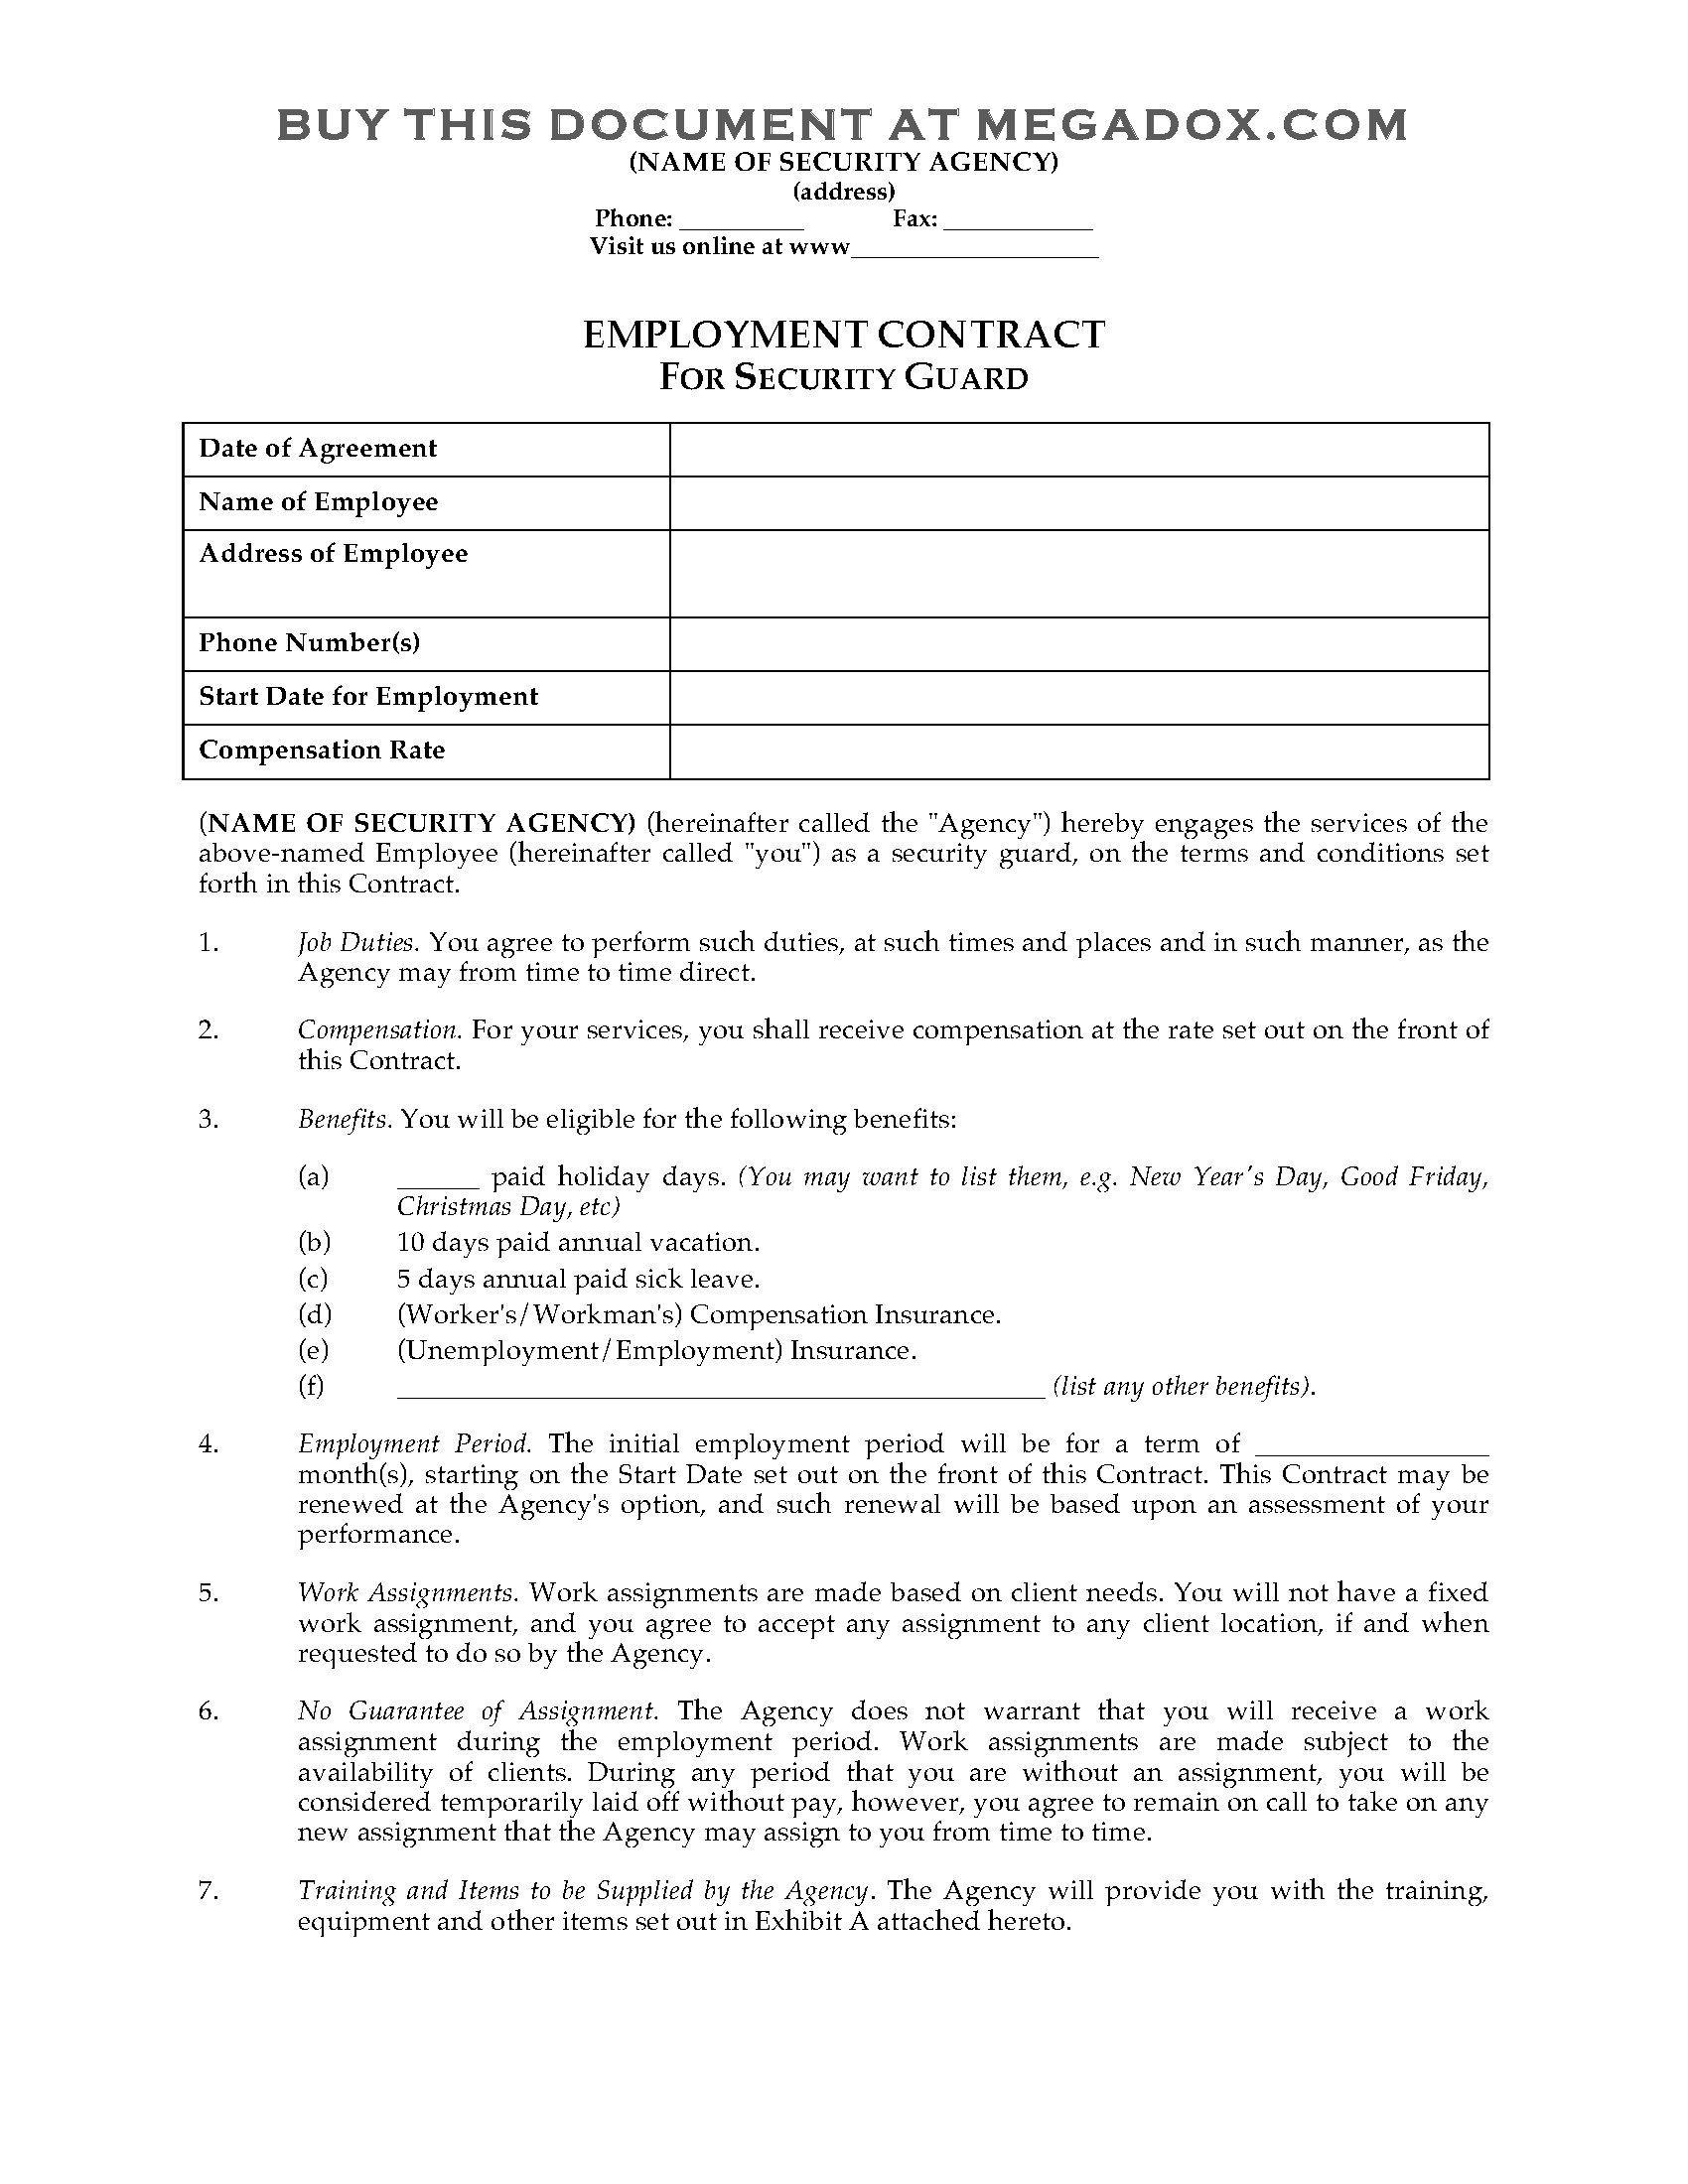 Contract Template For Security Guard Services